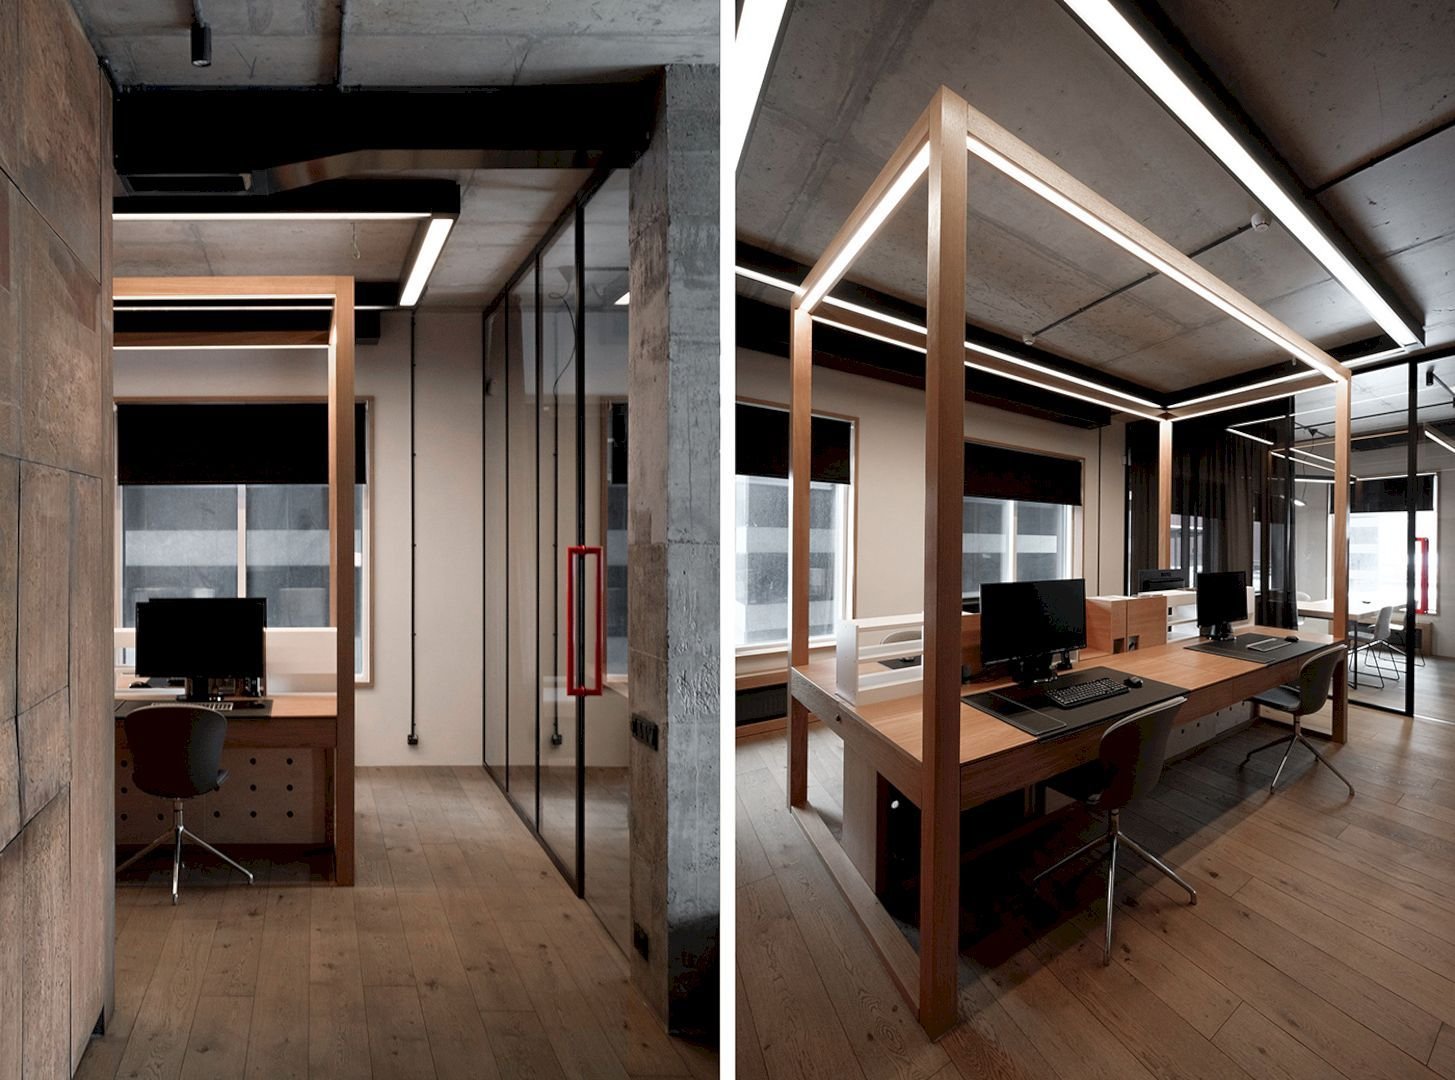 Trevisan Contemporary Interior Of A New Office With Wooden And